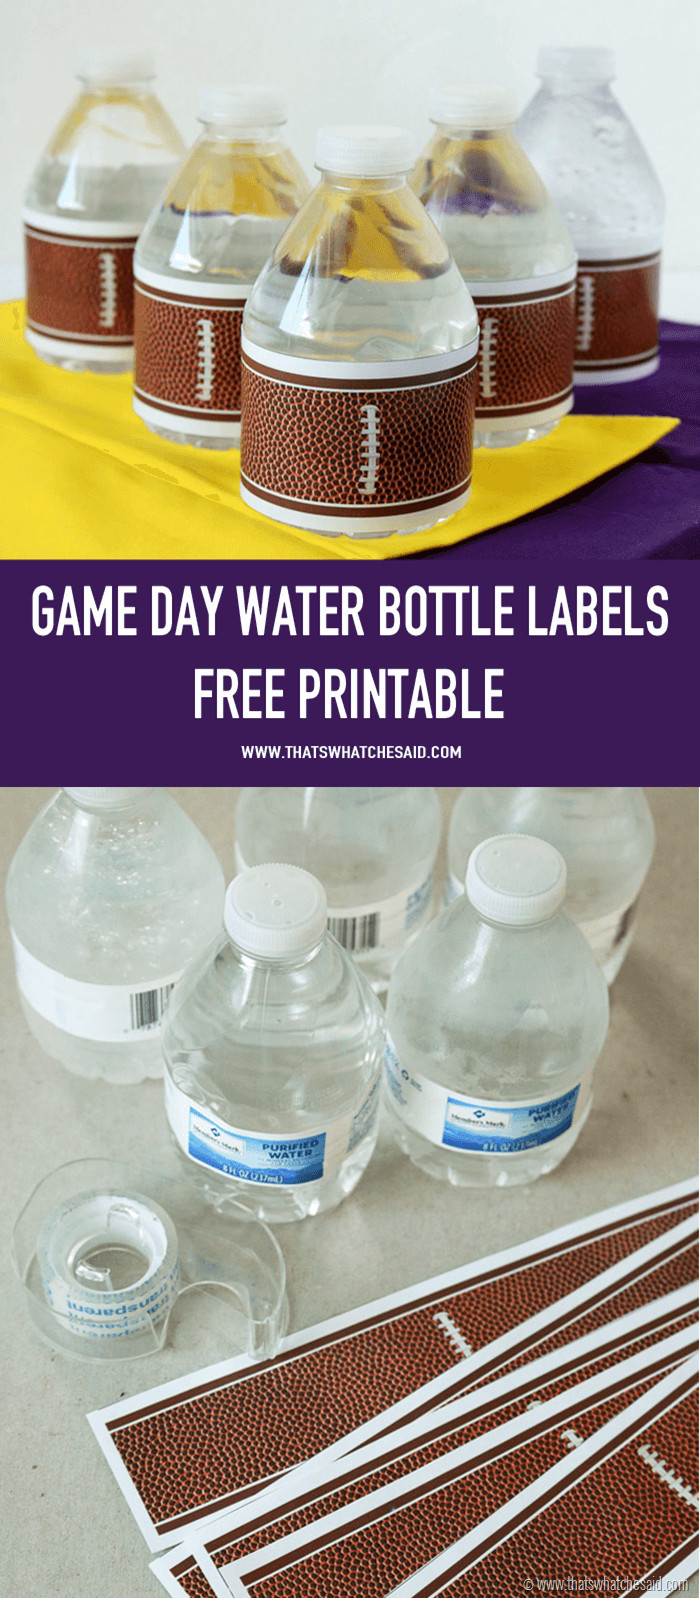 Printable Water Bottle Labels Football Water Bottle Labels that S What Che Said